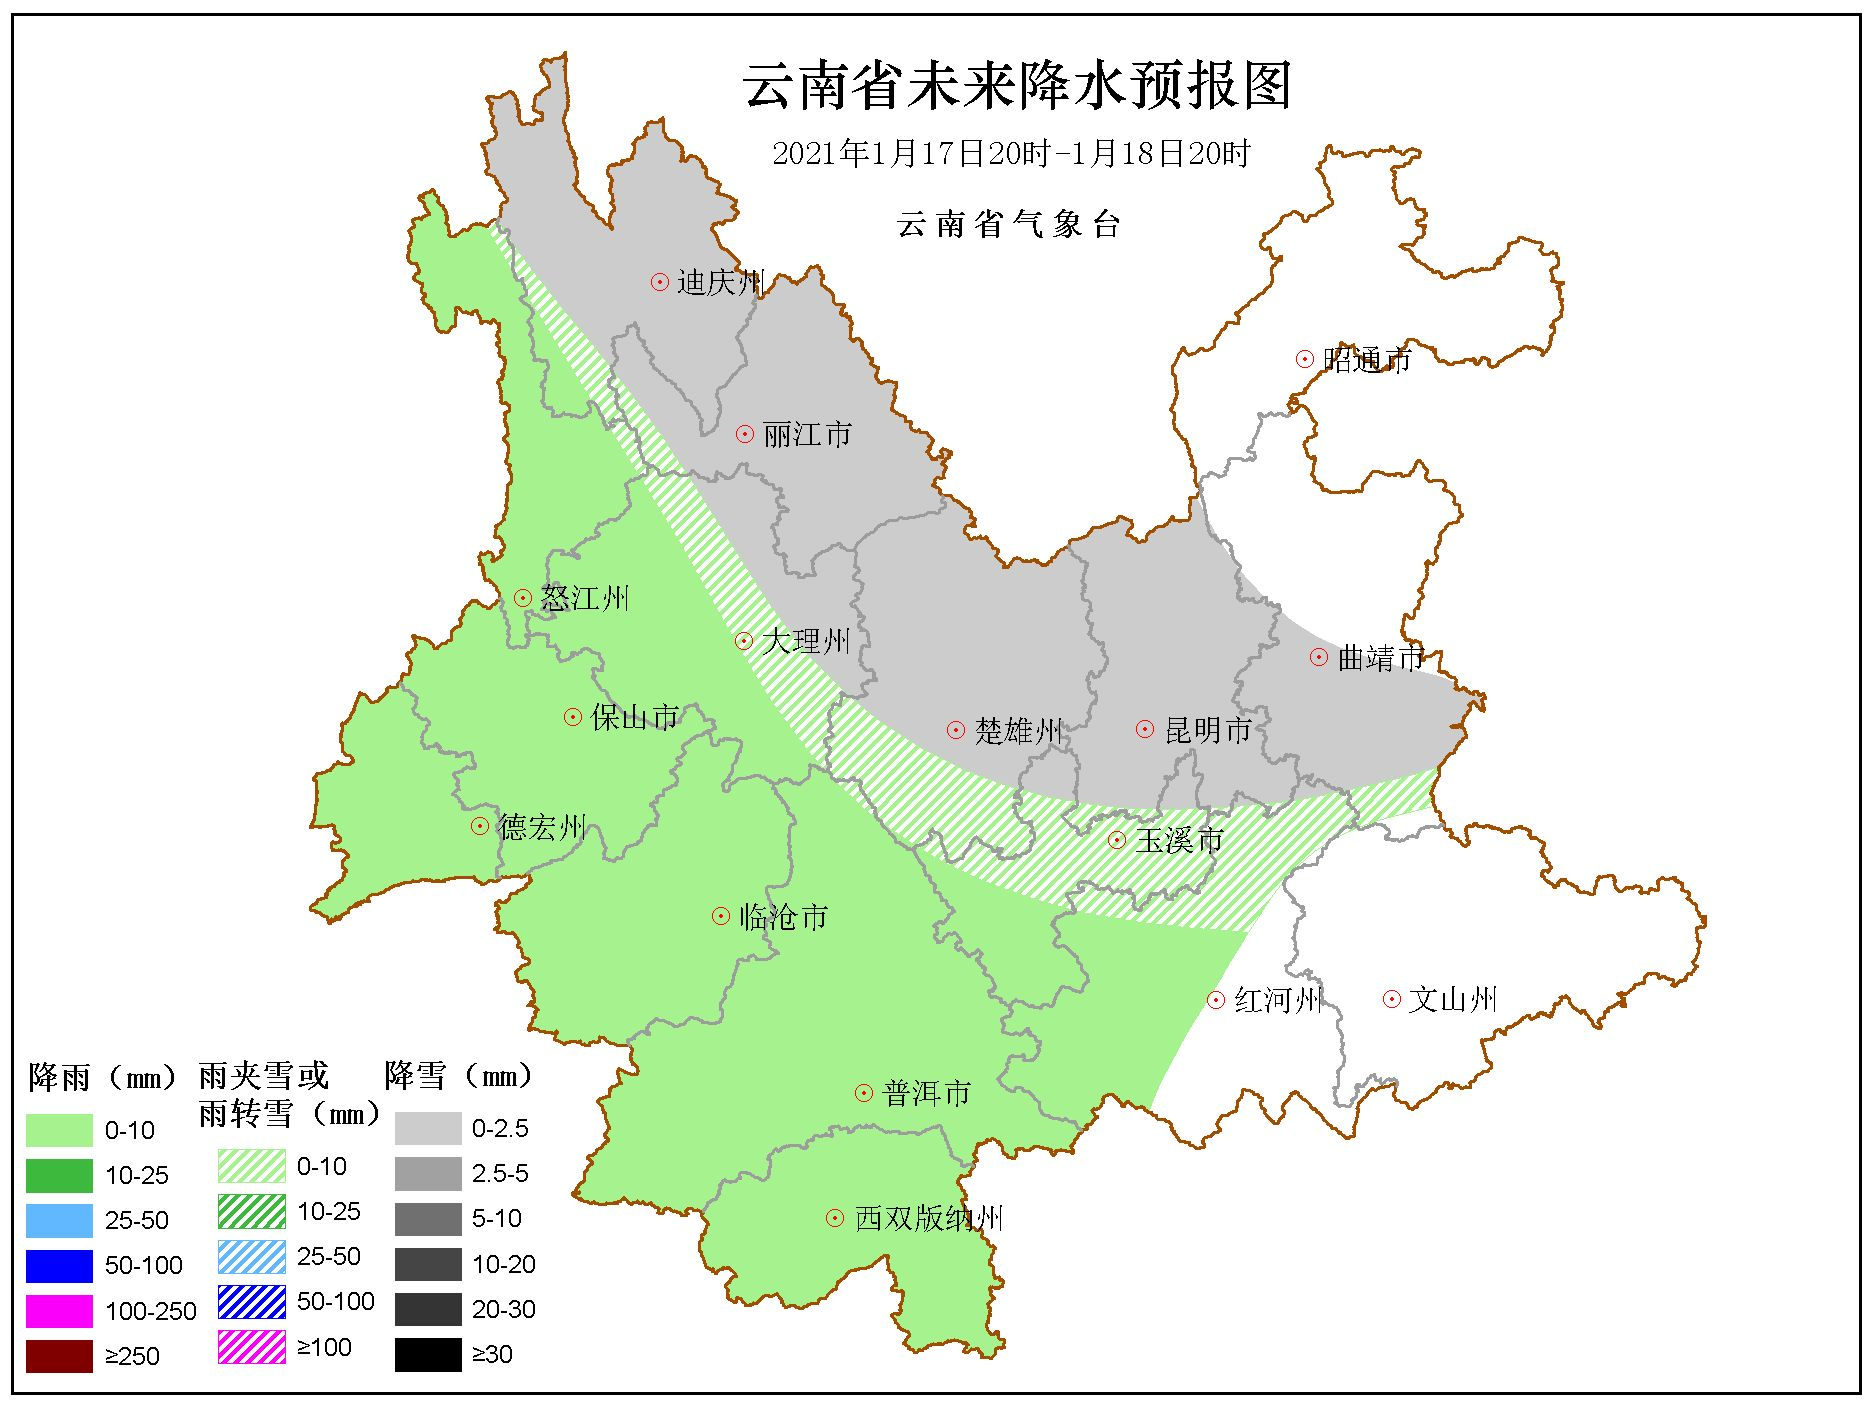 http://i.weather.com.cn/images/yunnan/tqyw/2021/01/17/1610869668196019331.jpg